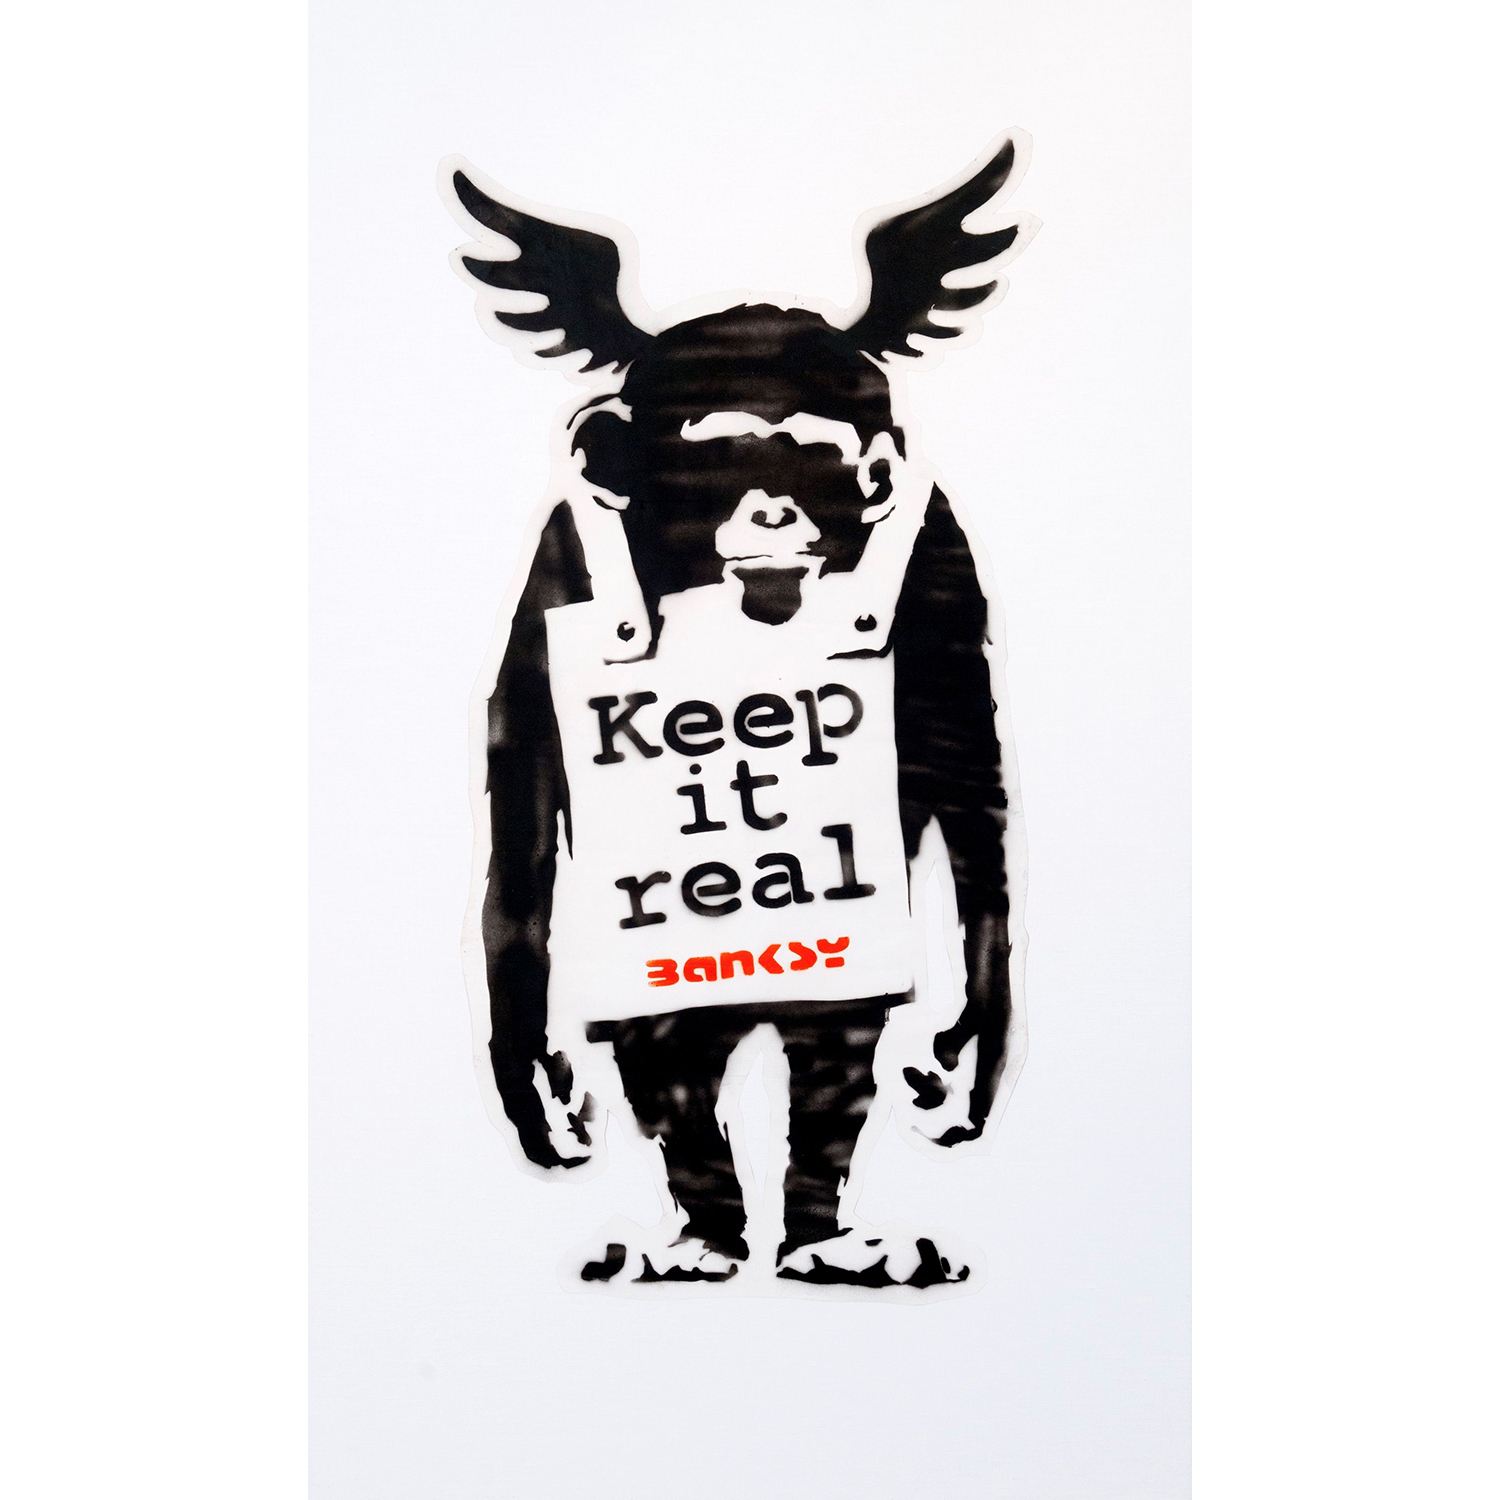 Banksy-Keep It Real' Monkey-2003